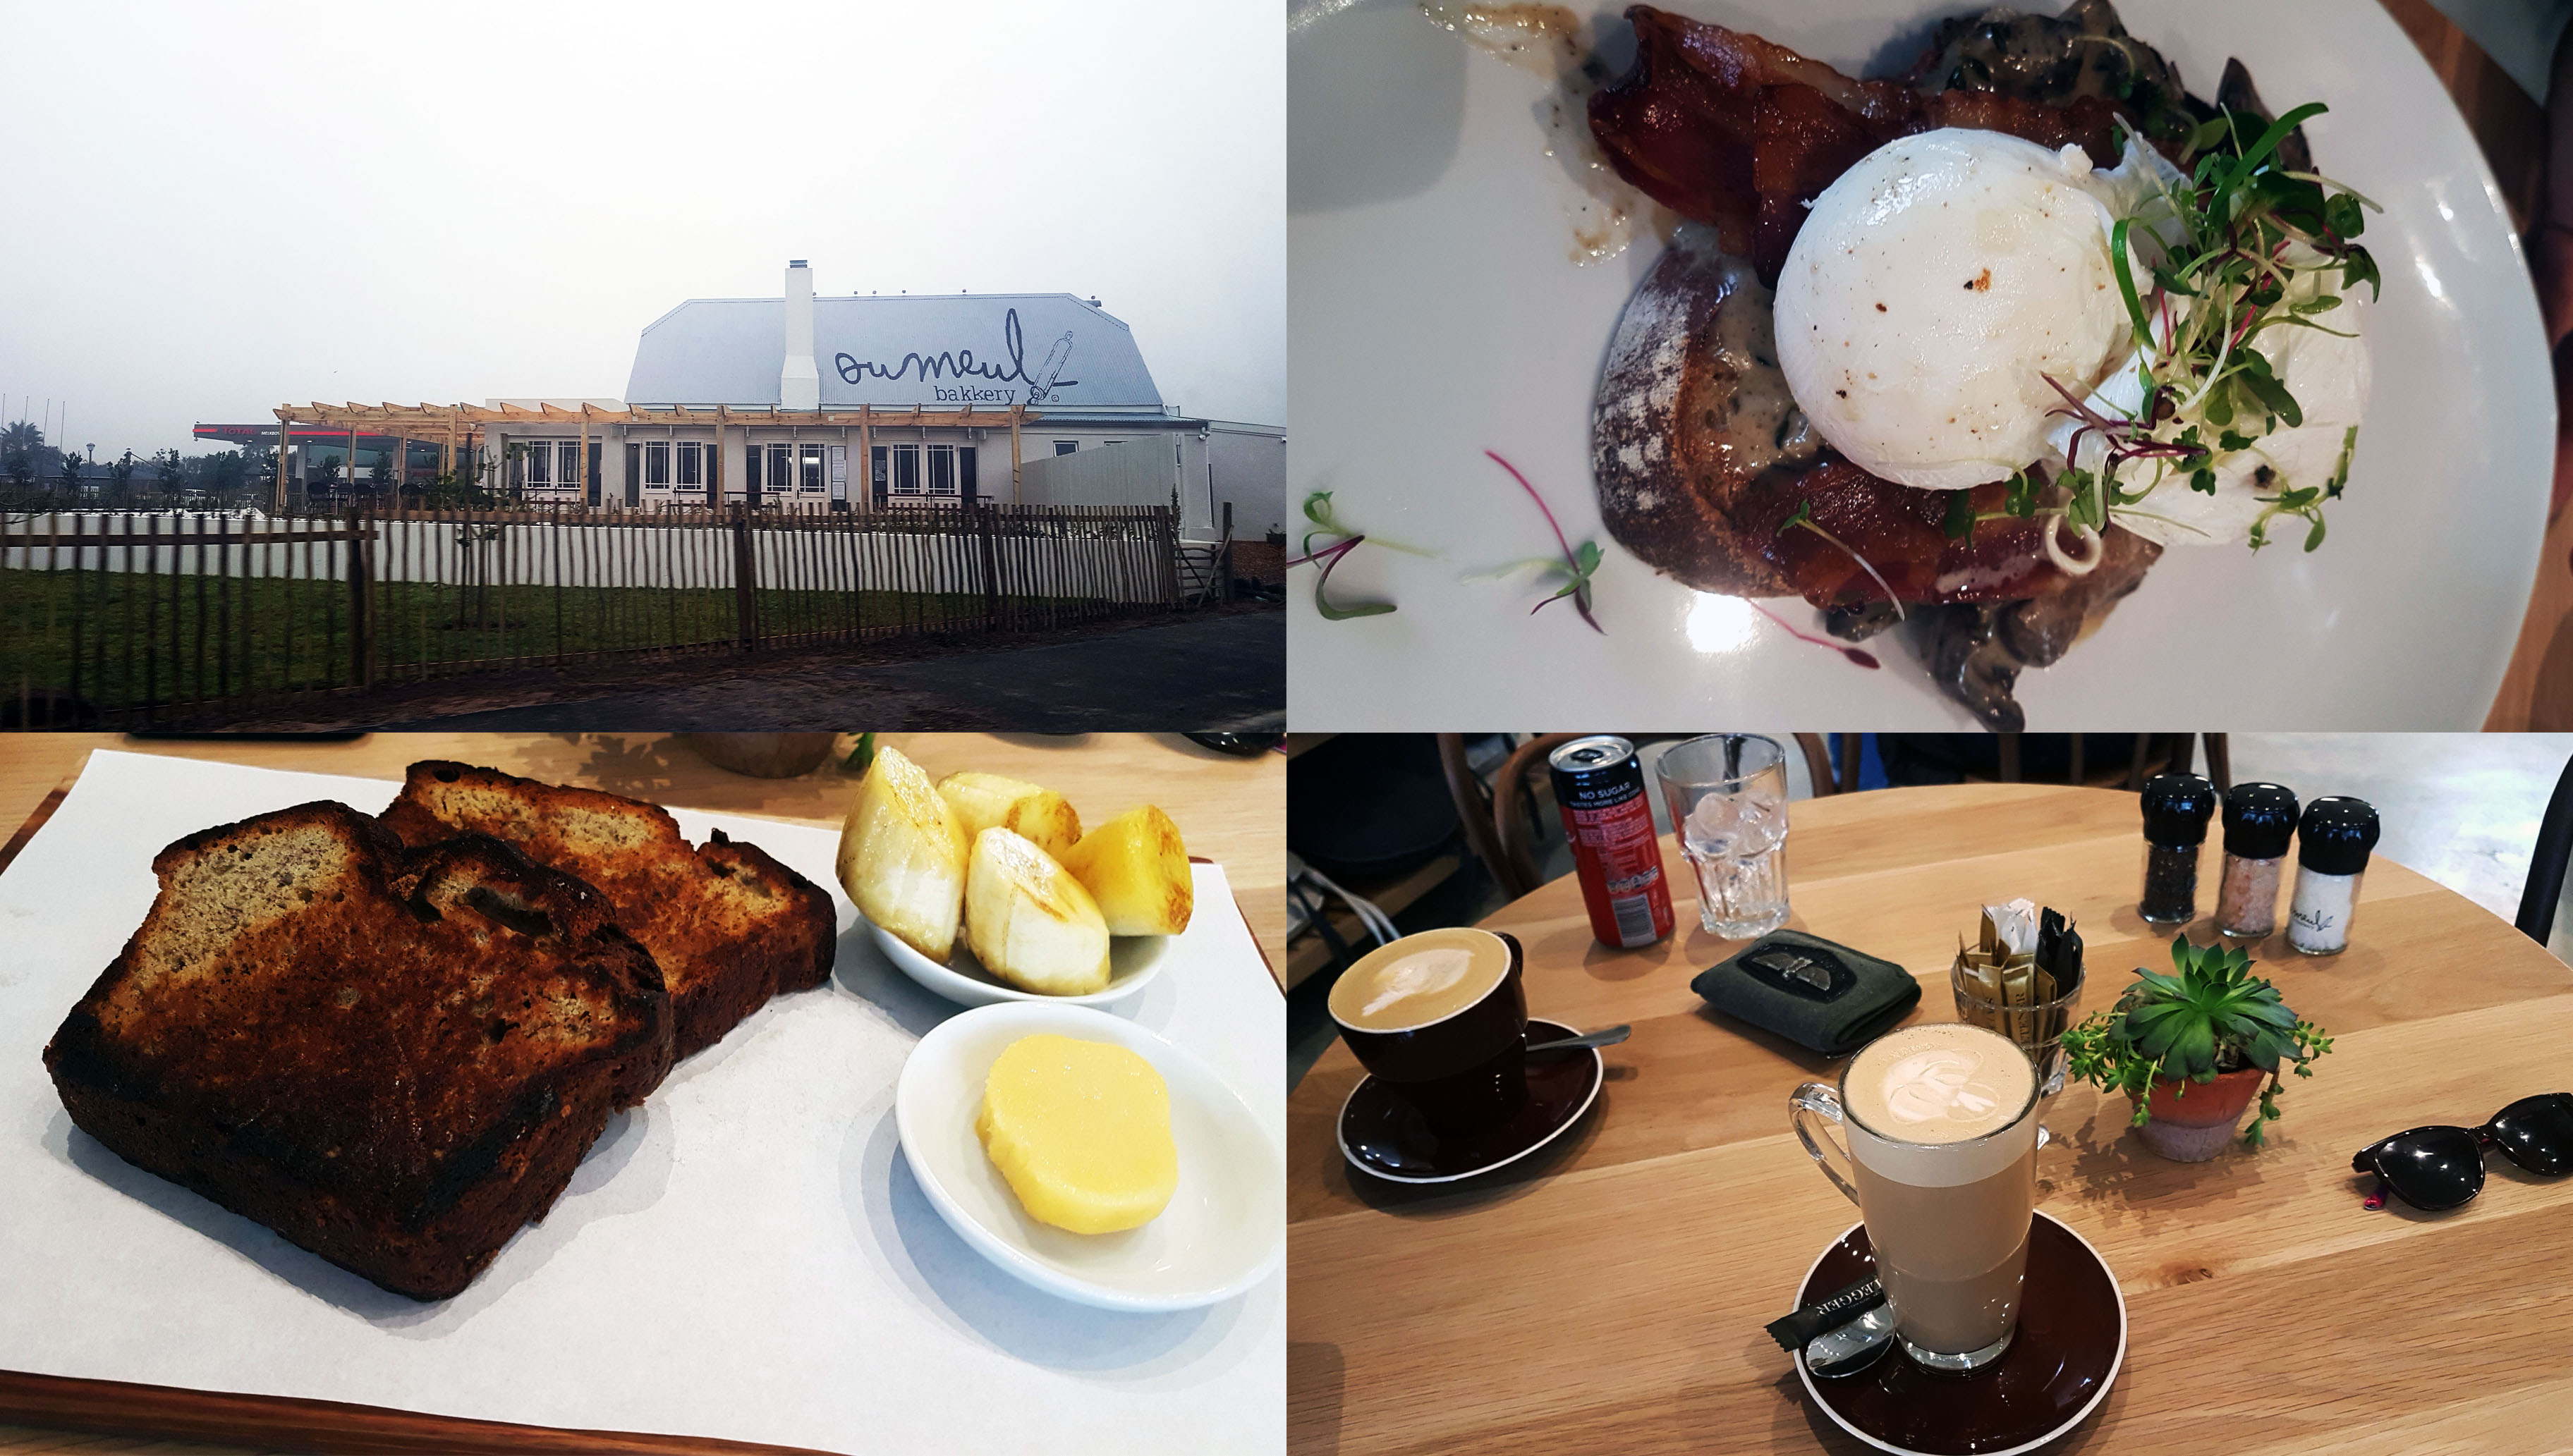 It was the Winteriest day on Sunday so we sat inside at the new Ou Meul Bakkery in Melkbos (where the farmstall used to be). See Husband's eggy toast and my toasted banana bread, as well as our coffees - a flat white and honey-nut latte, respectively.